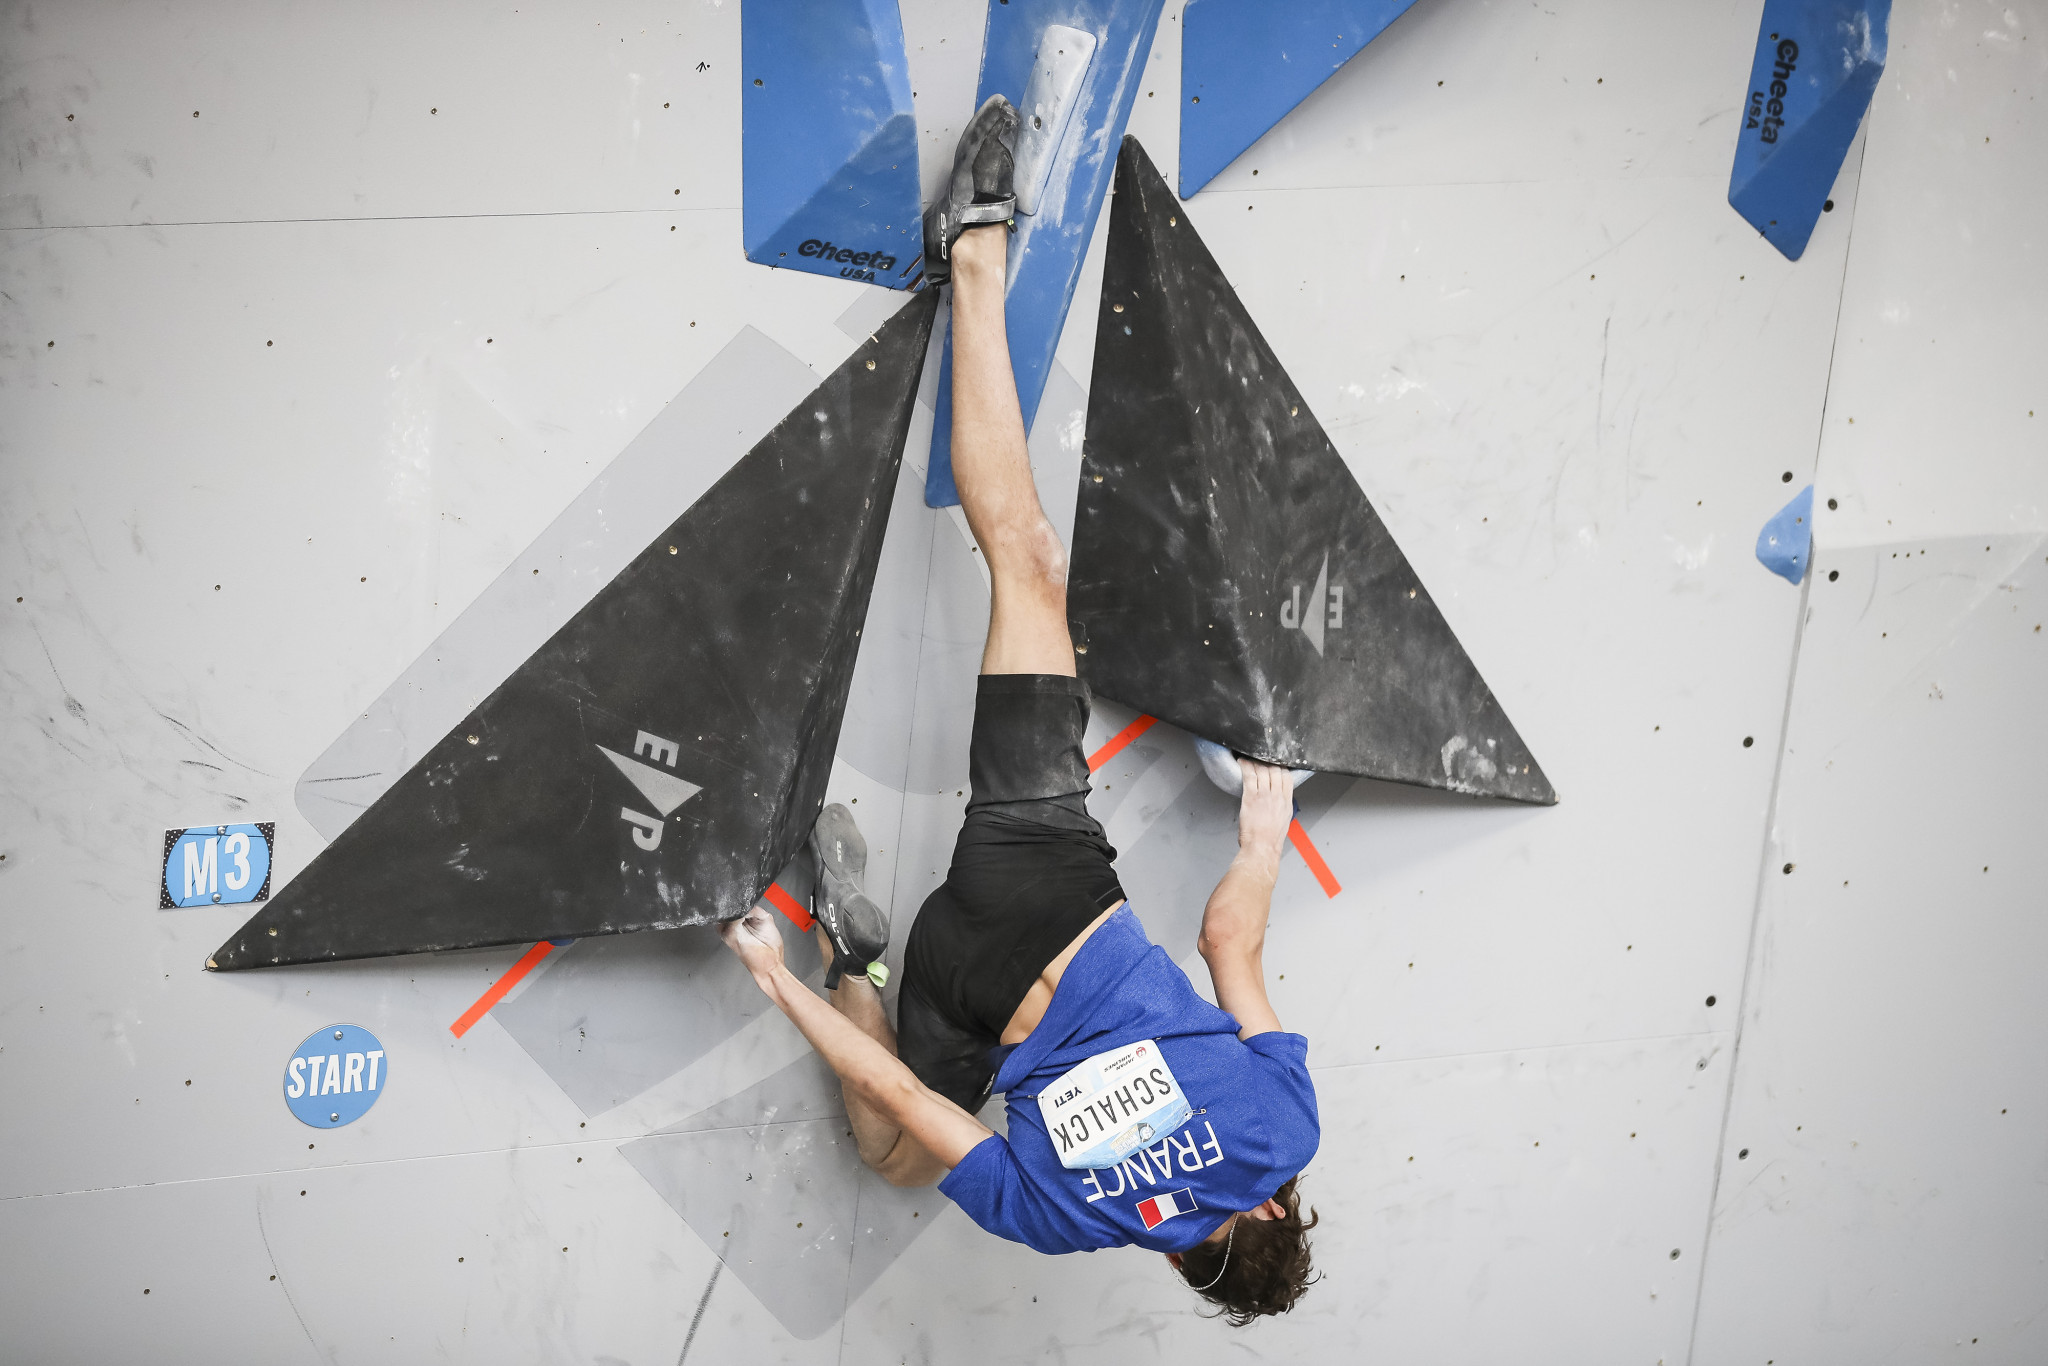 Mejdi Schalck impressed in qualification for the youth A men's boulder event ©Getty Images